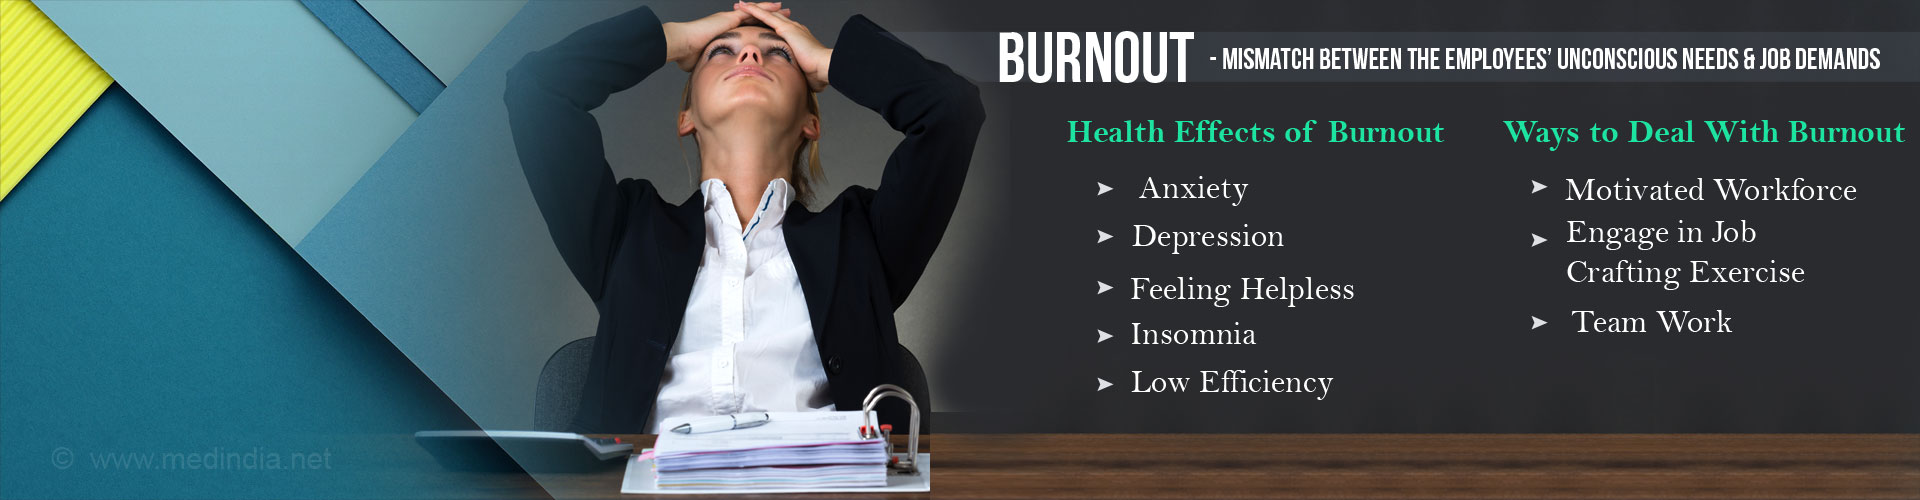 Burnout - Kill it Before it Kills You!